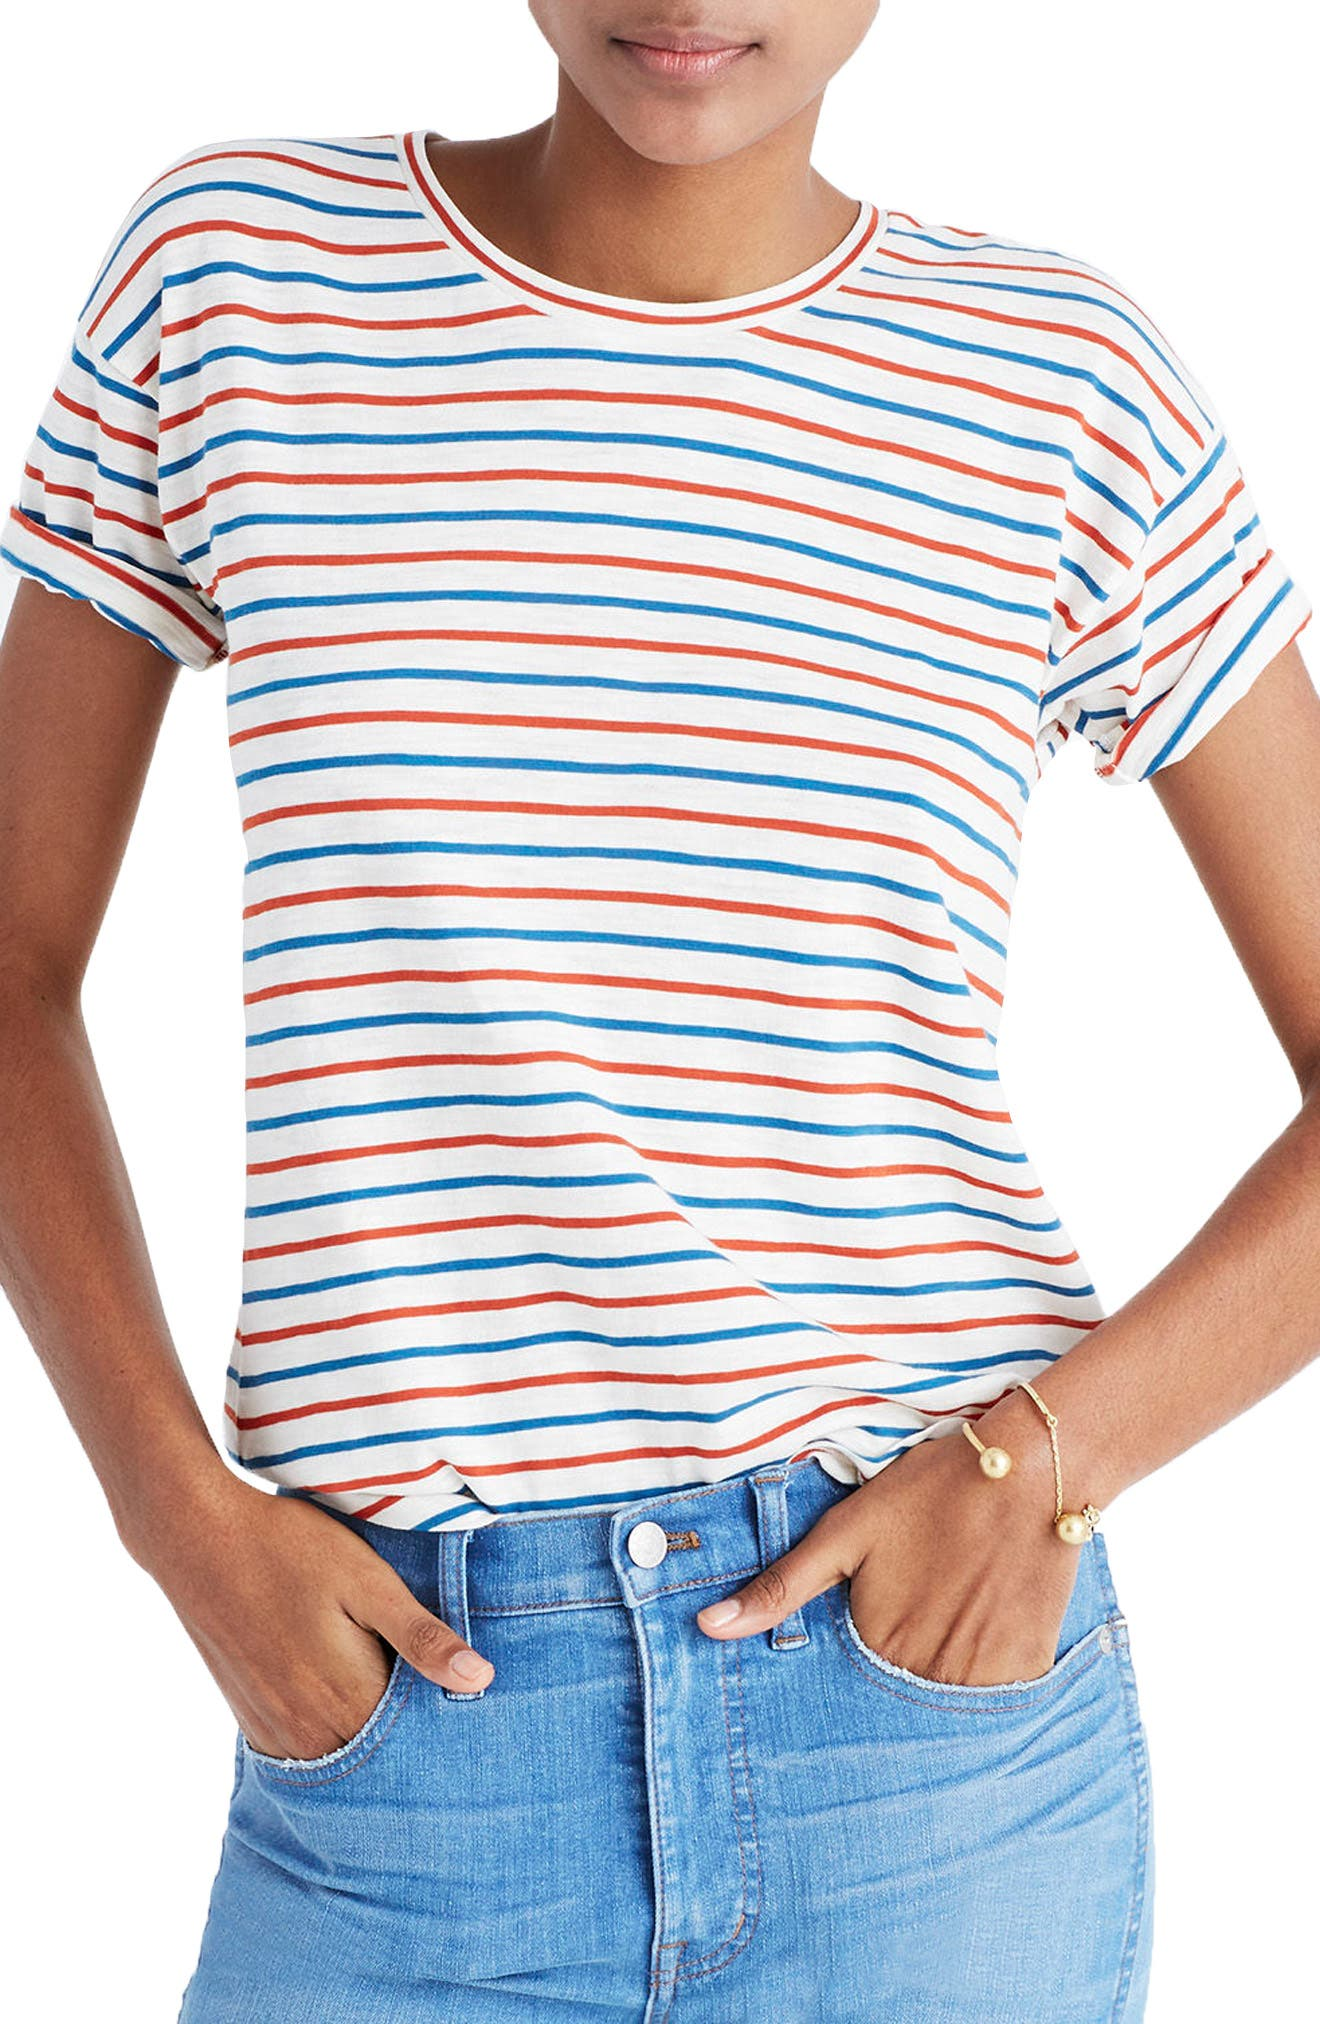 Whisper Cotton Stripe Crewneck Tee,                         Main,                         color, 900